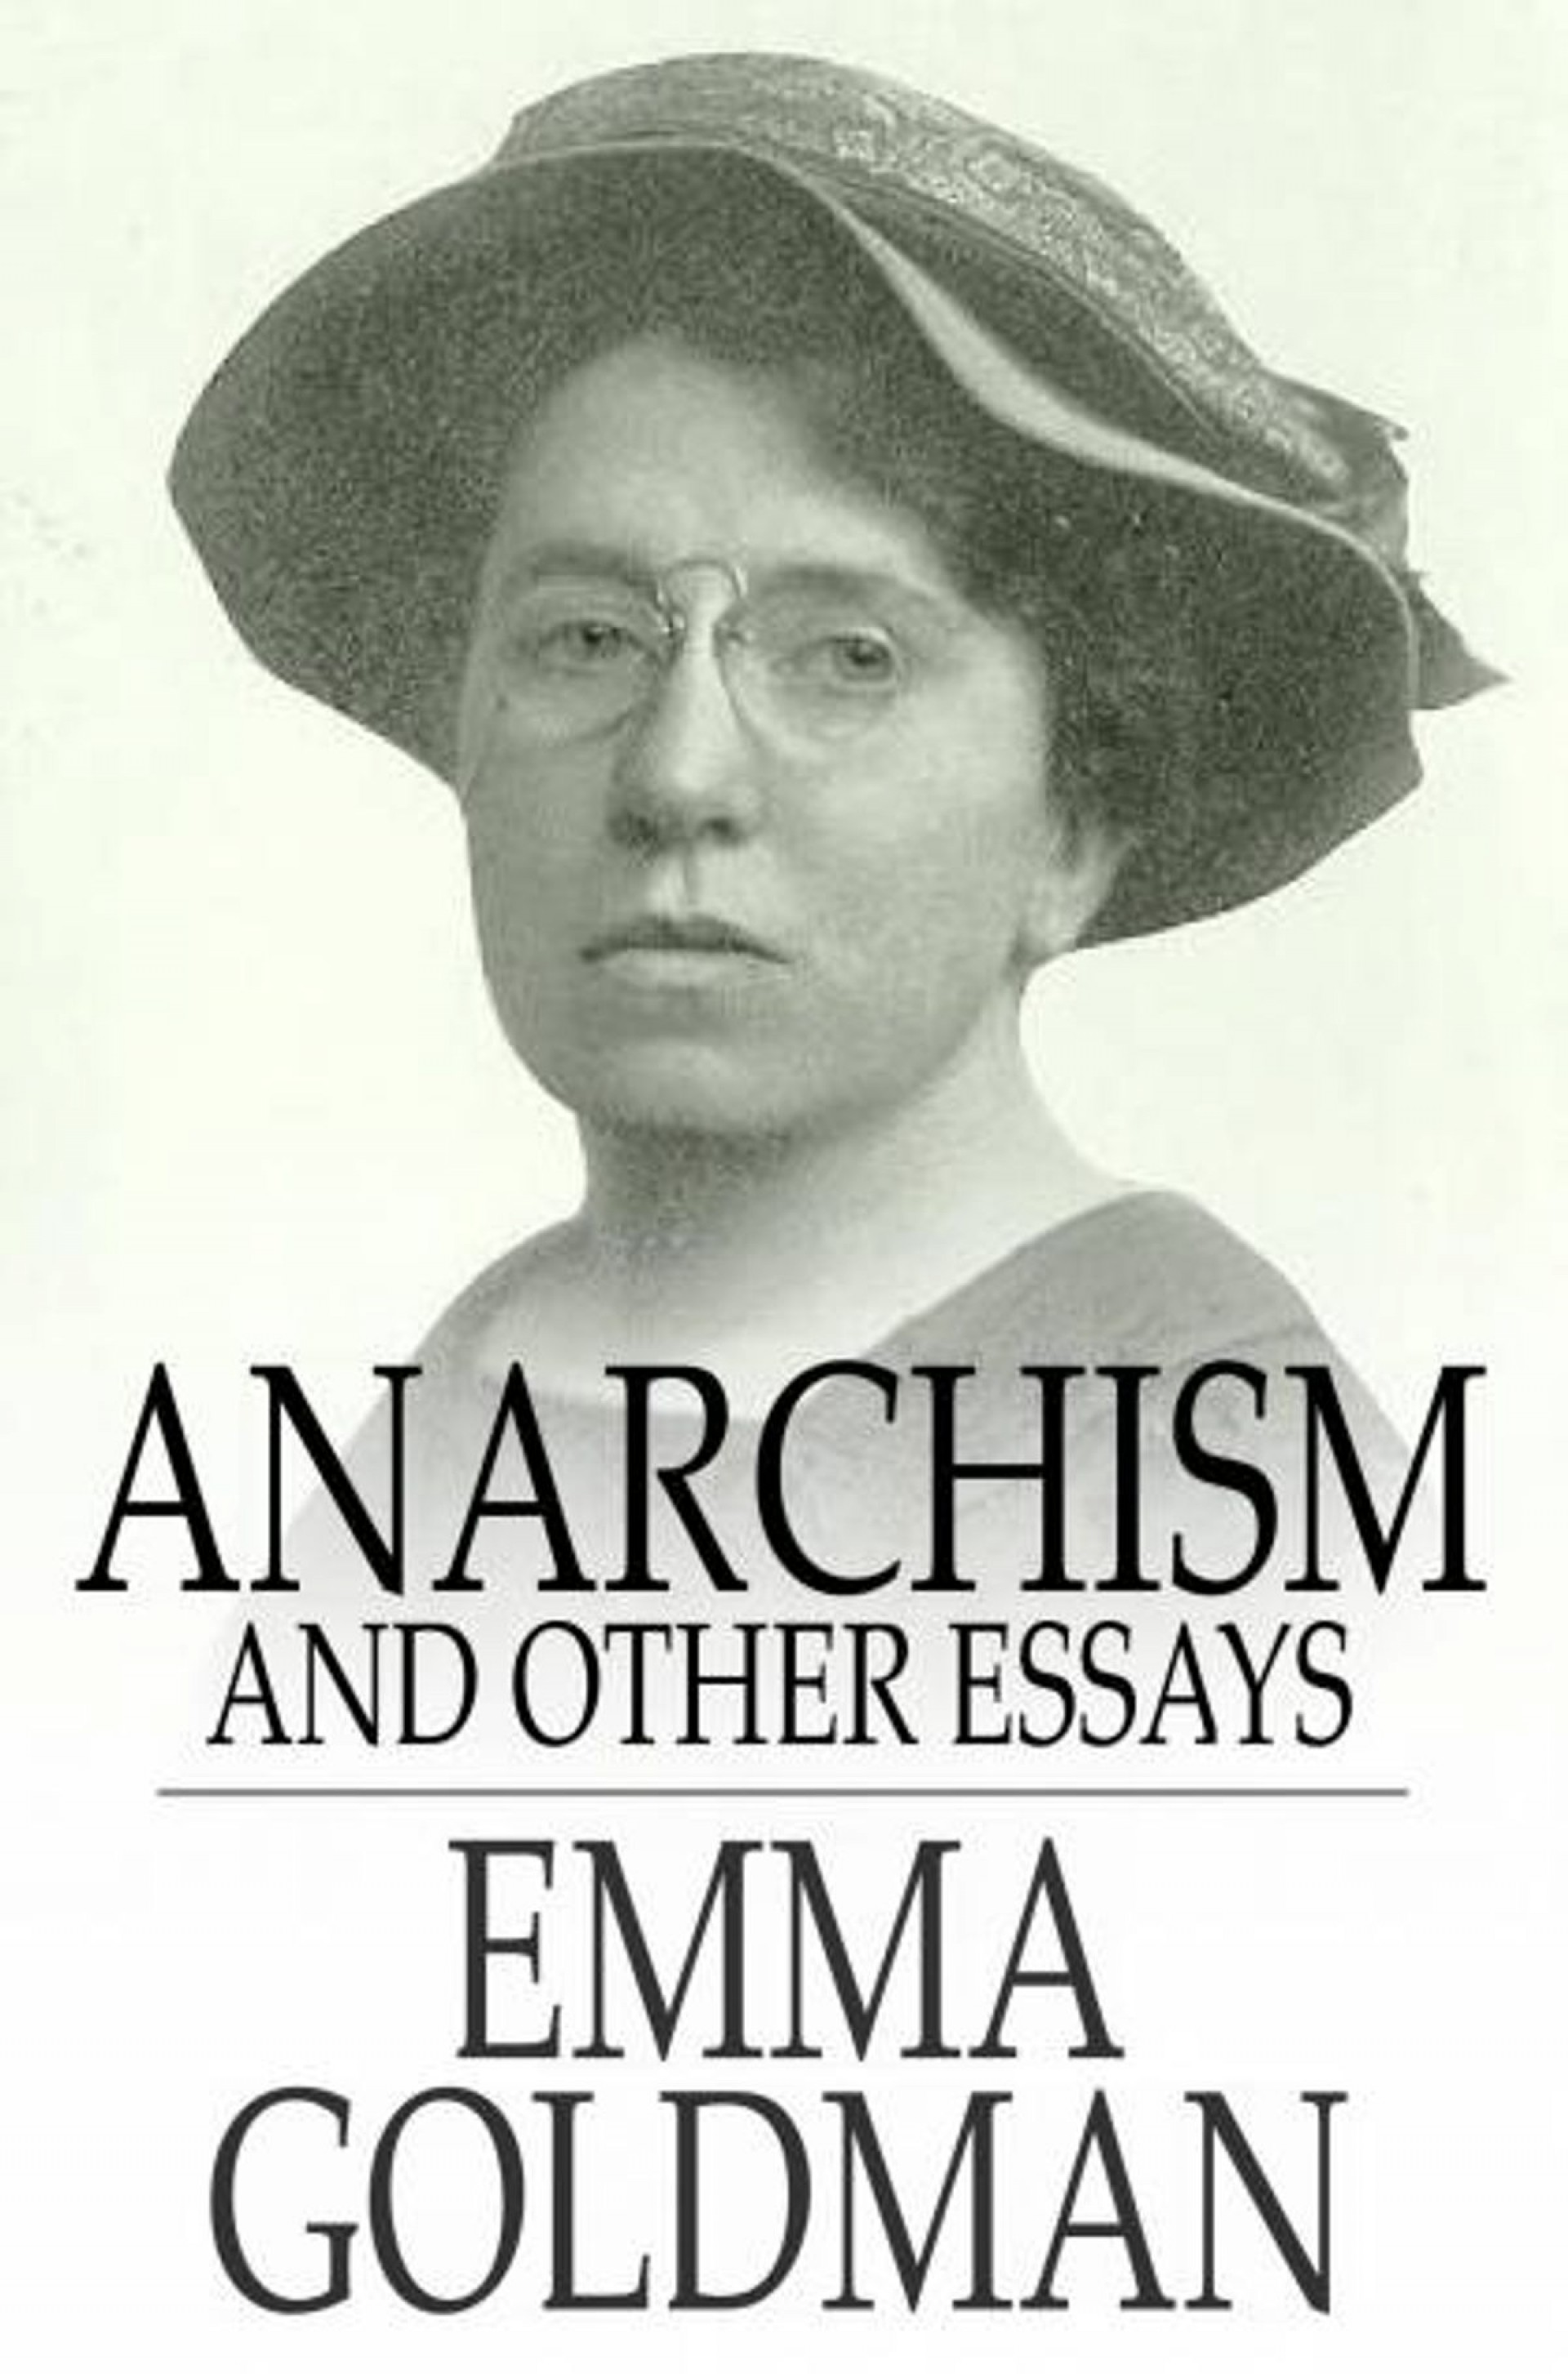 009 Anarchism And Other Essays Essay Incredible Emma Goldman Summary Mla Citation 1920